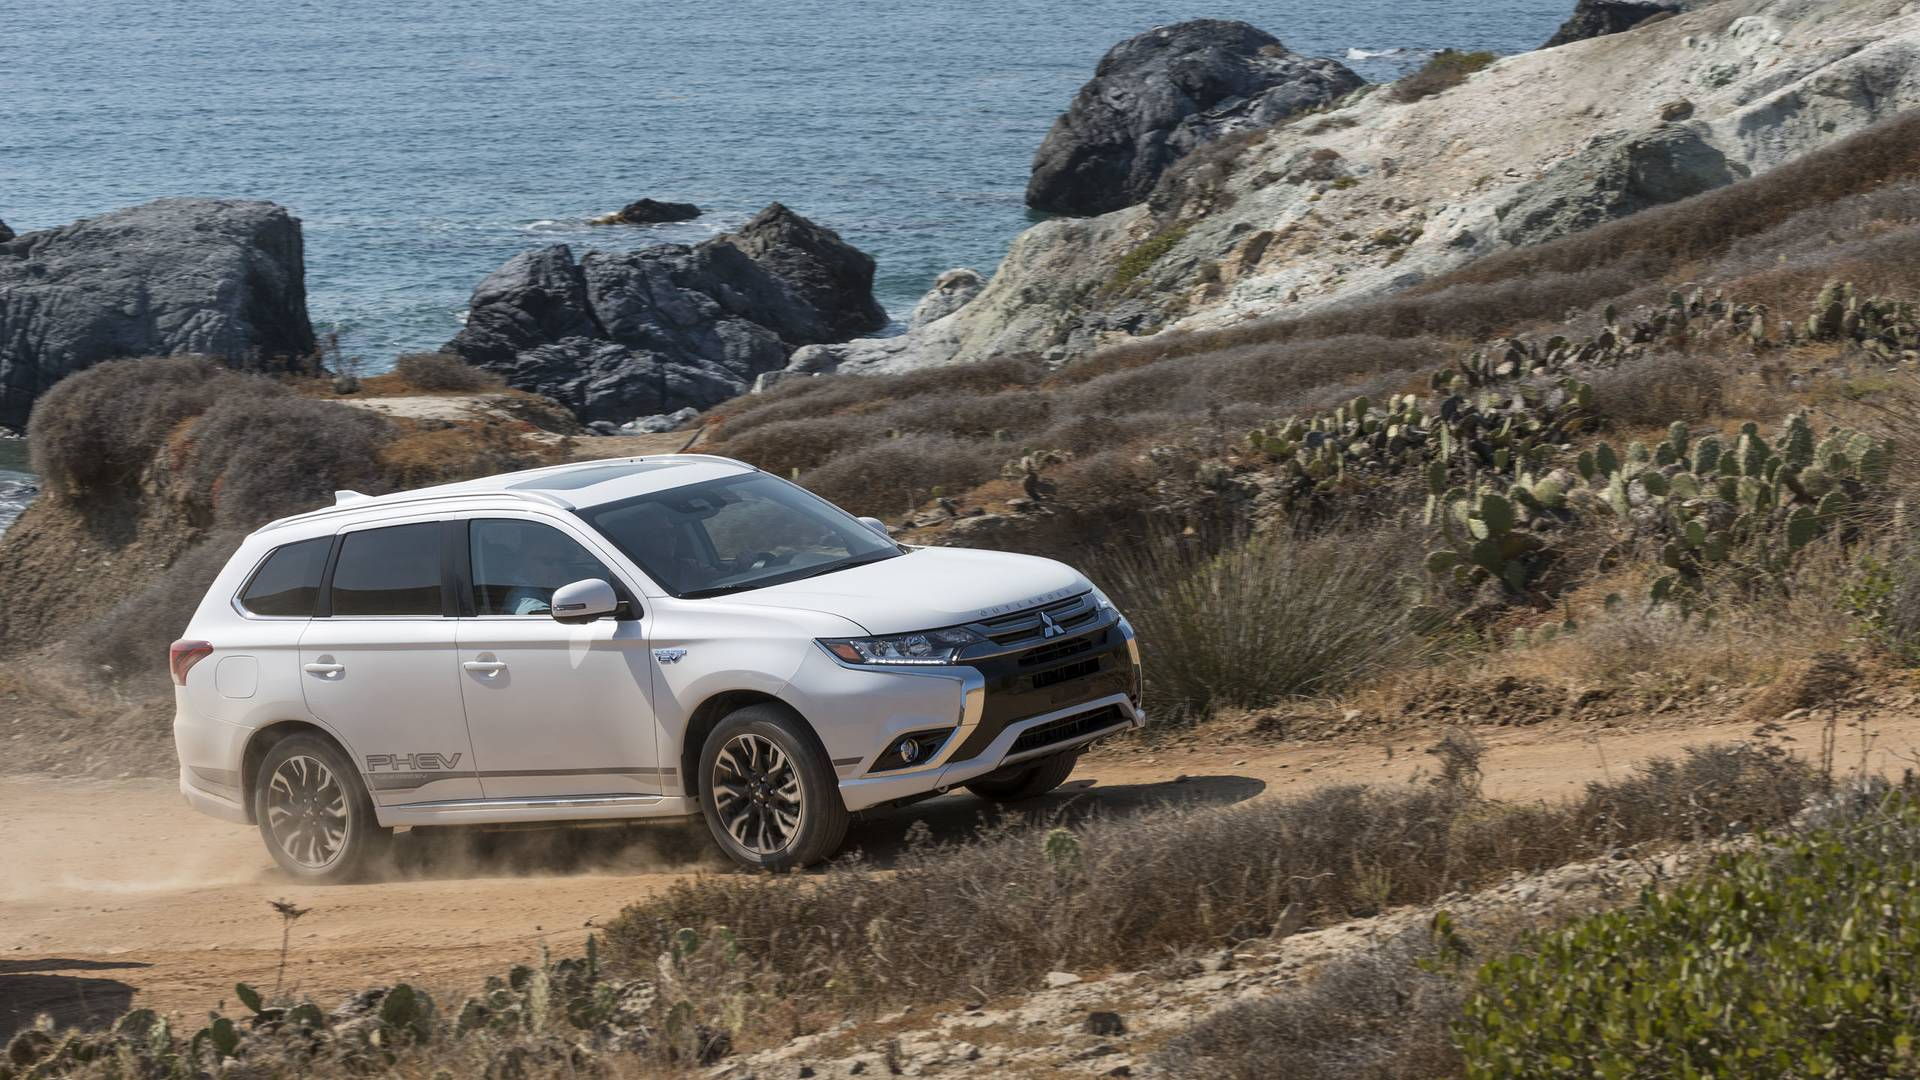 fox mitsubishi collects customer by munns first car delivery after publish three online left antony smartphone dealer new from david takes magazine deane weeks official buy vehicle website ordering